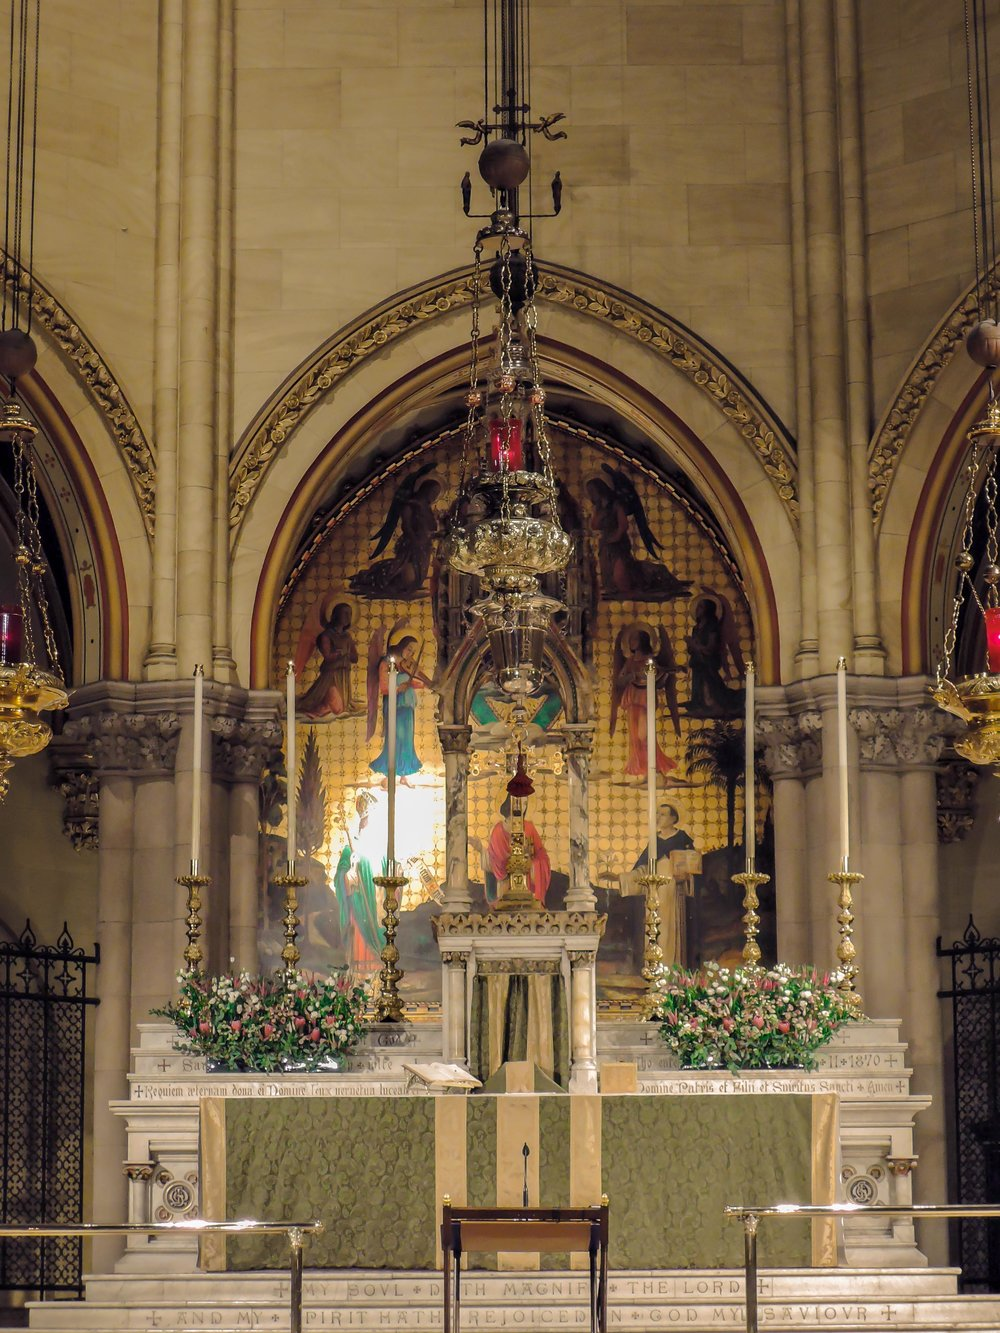 The High Altar before the 9:00 AM Mass on Sunday, January 15, 2017